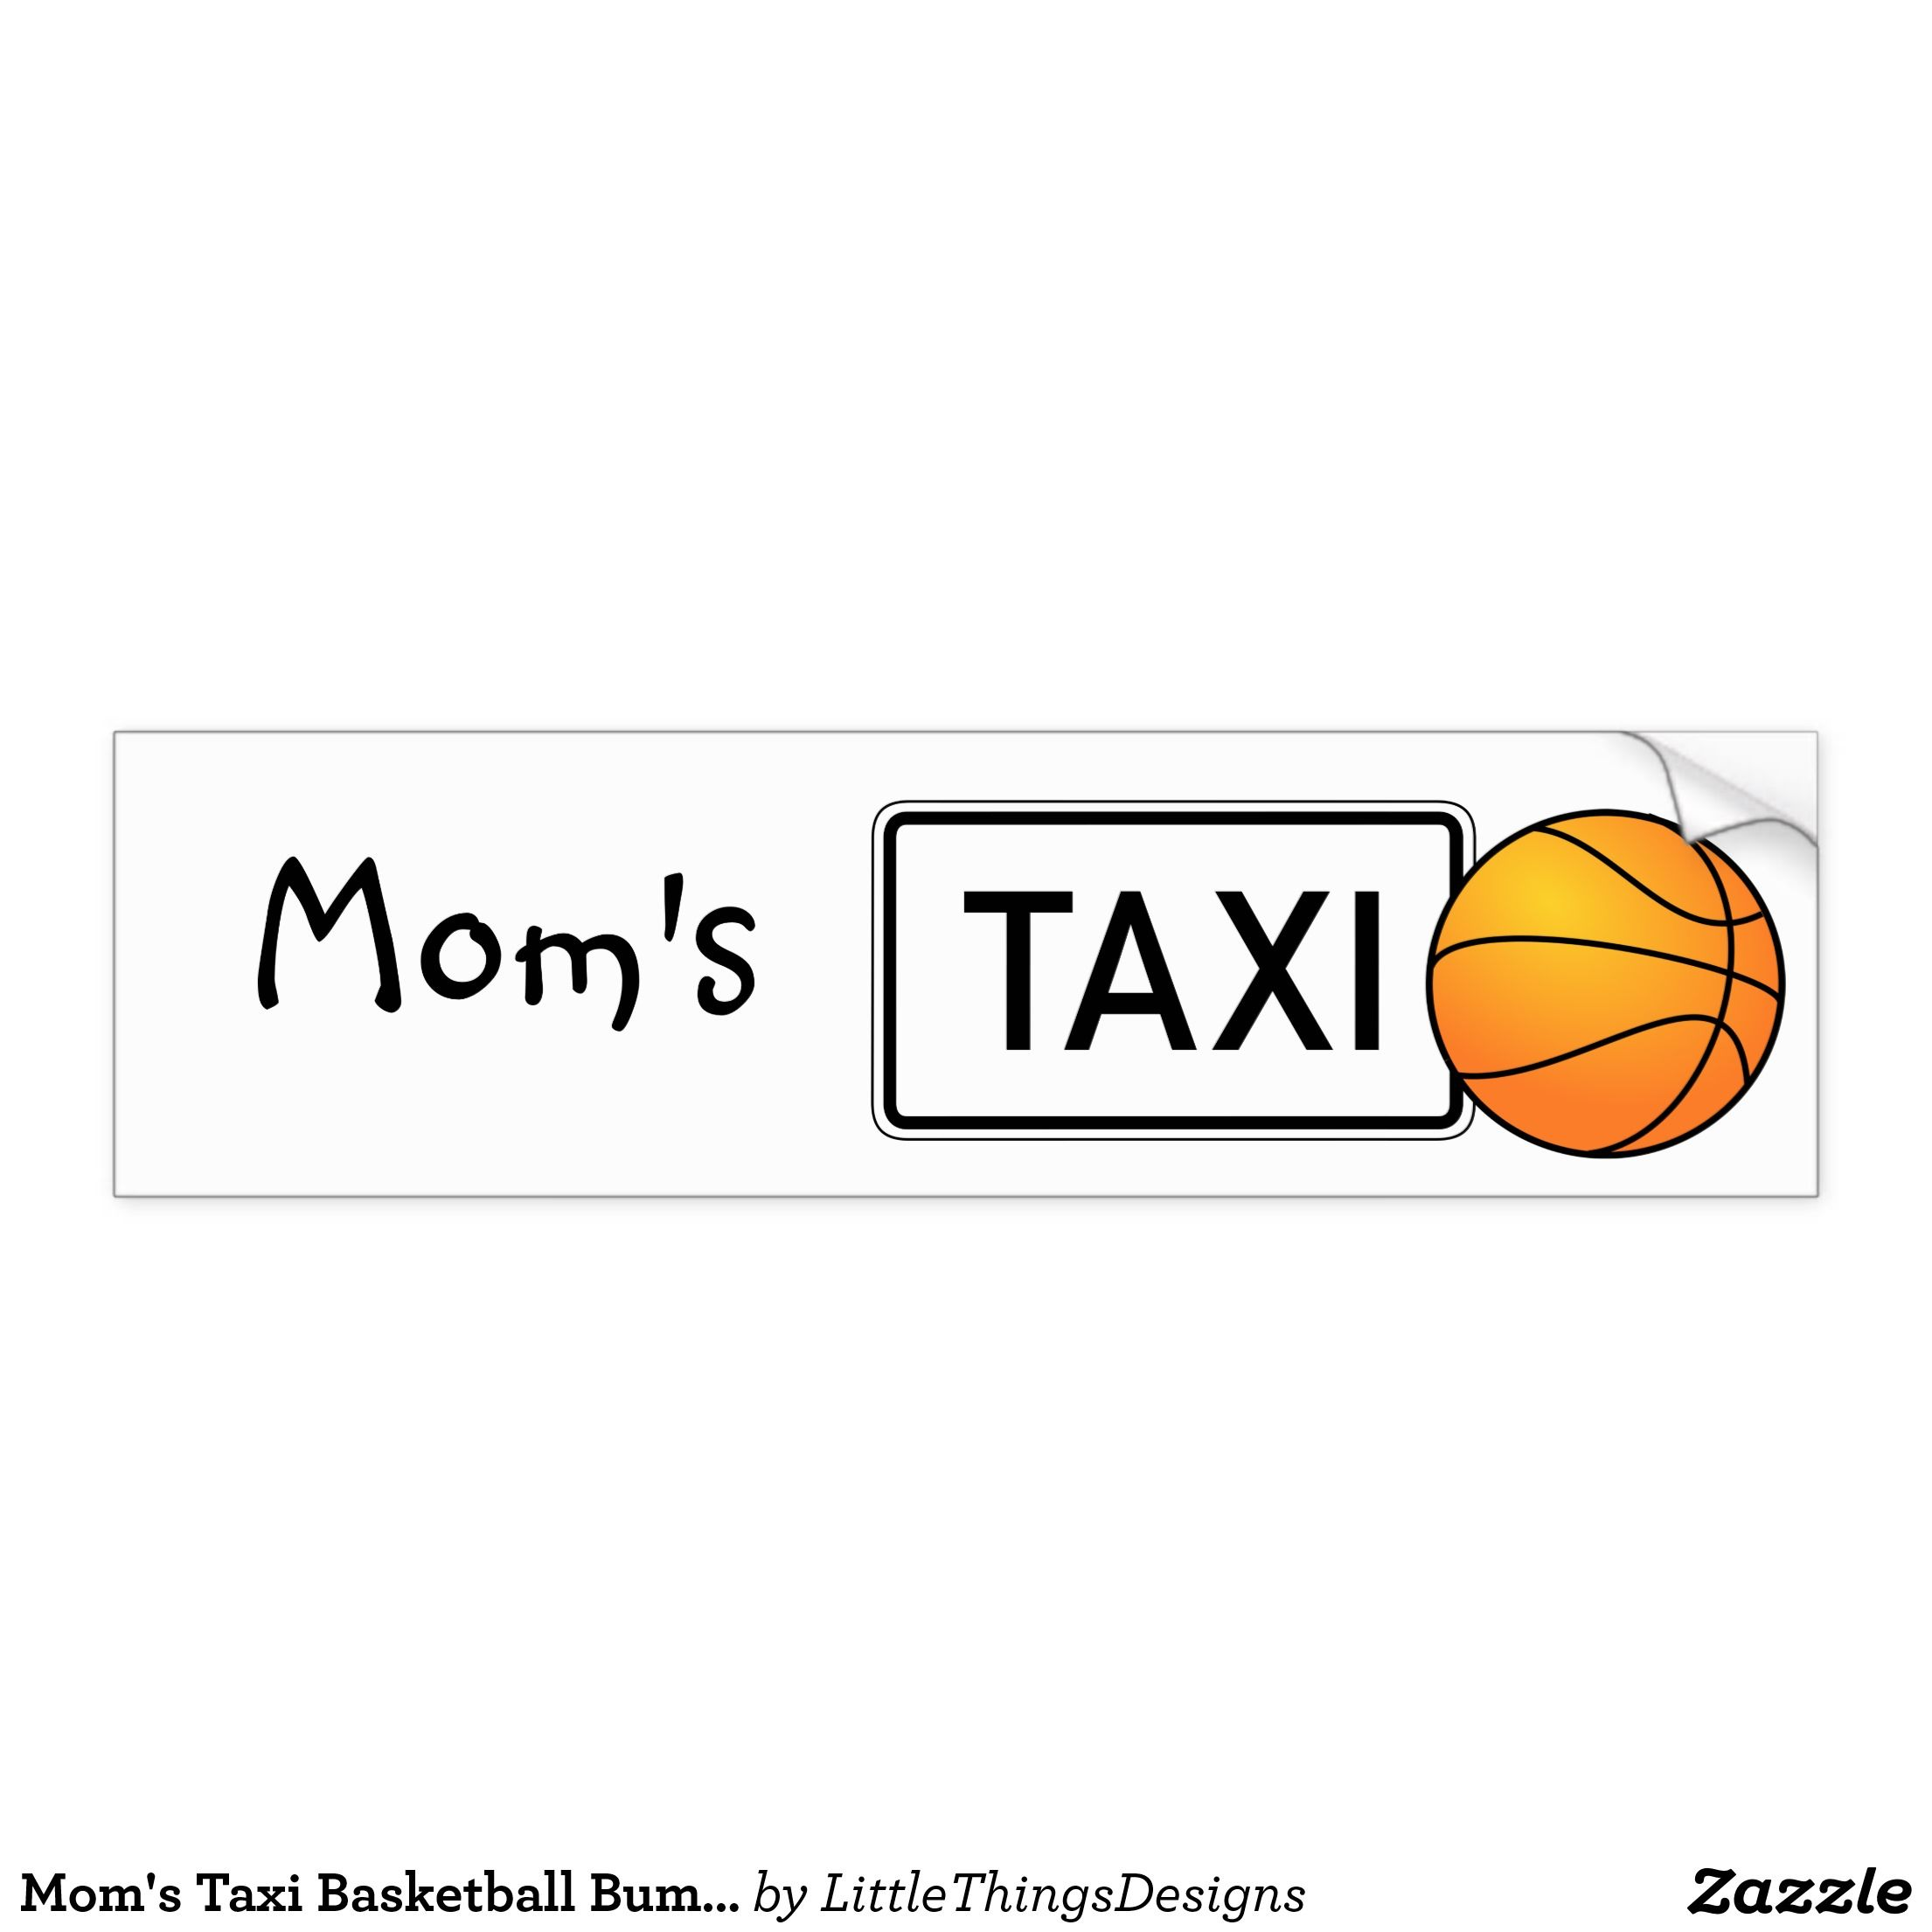 Mom S Taxi Basketball Bumper Sticker Zazzle Com Bumper Stickers Car Bumper Stickers Personalized Mother S Day Gifts [ 2210 x 2210 Pixel ]